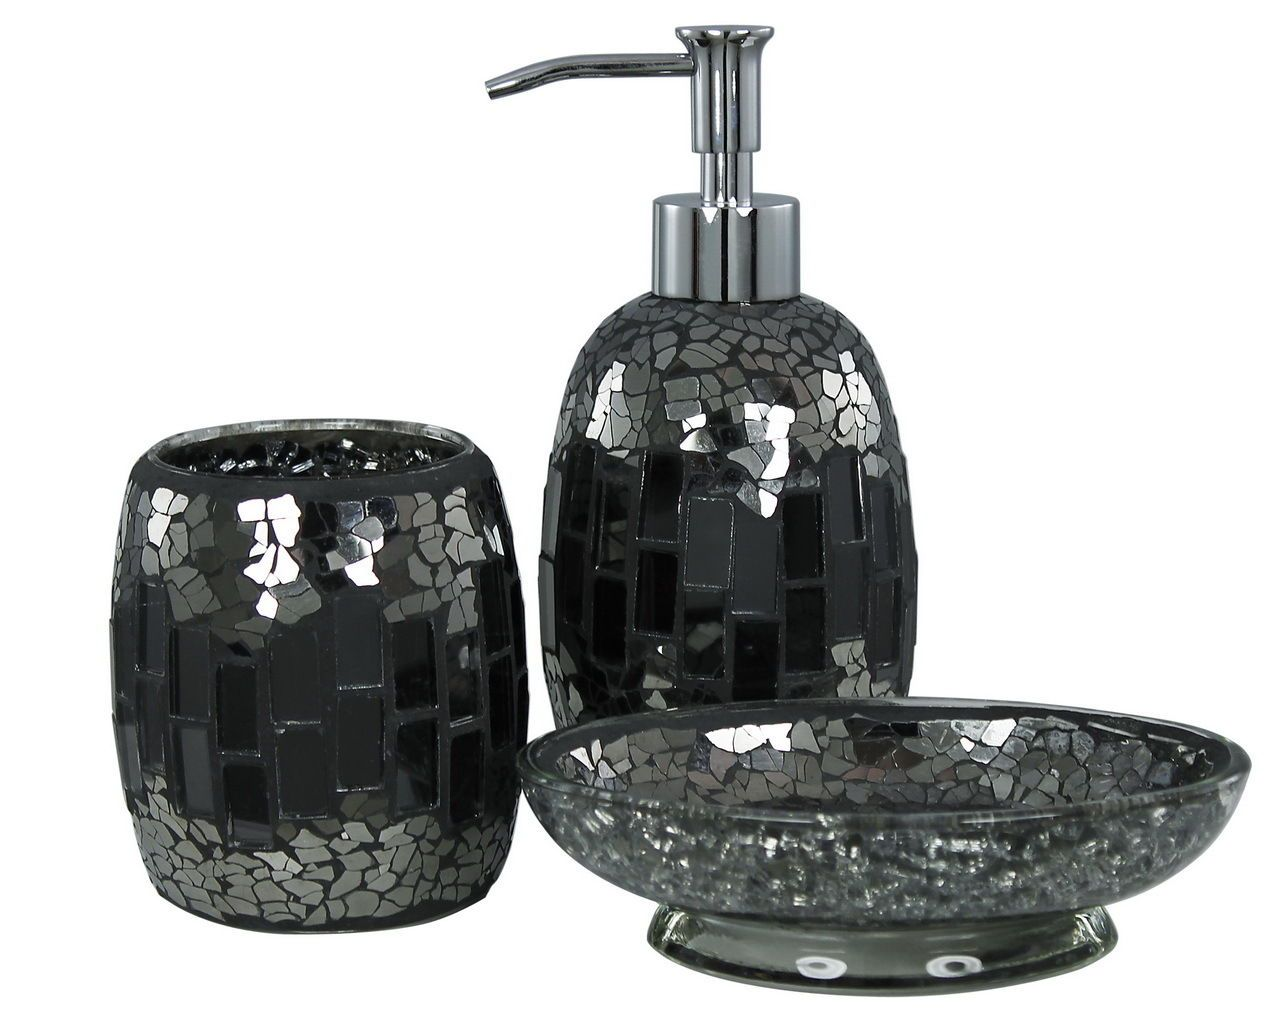 3 Piece Black Sparkle Mosaic Glass Bathroom Set Soap Dispenser Dish Toothbrush Bedroom Home